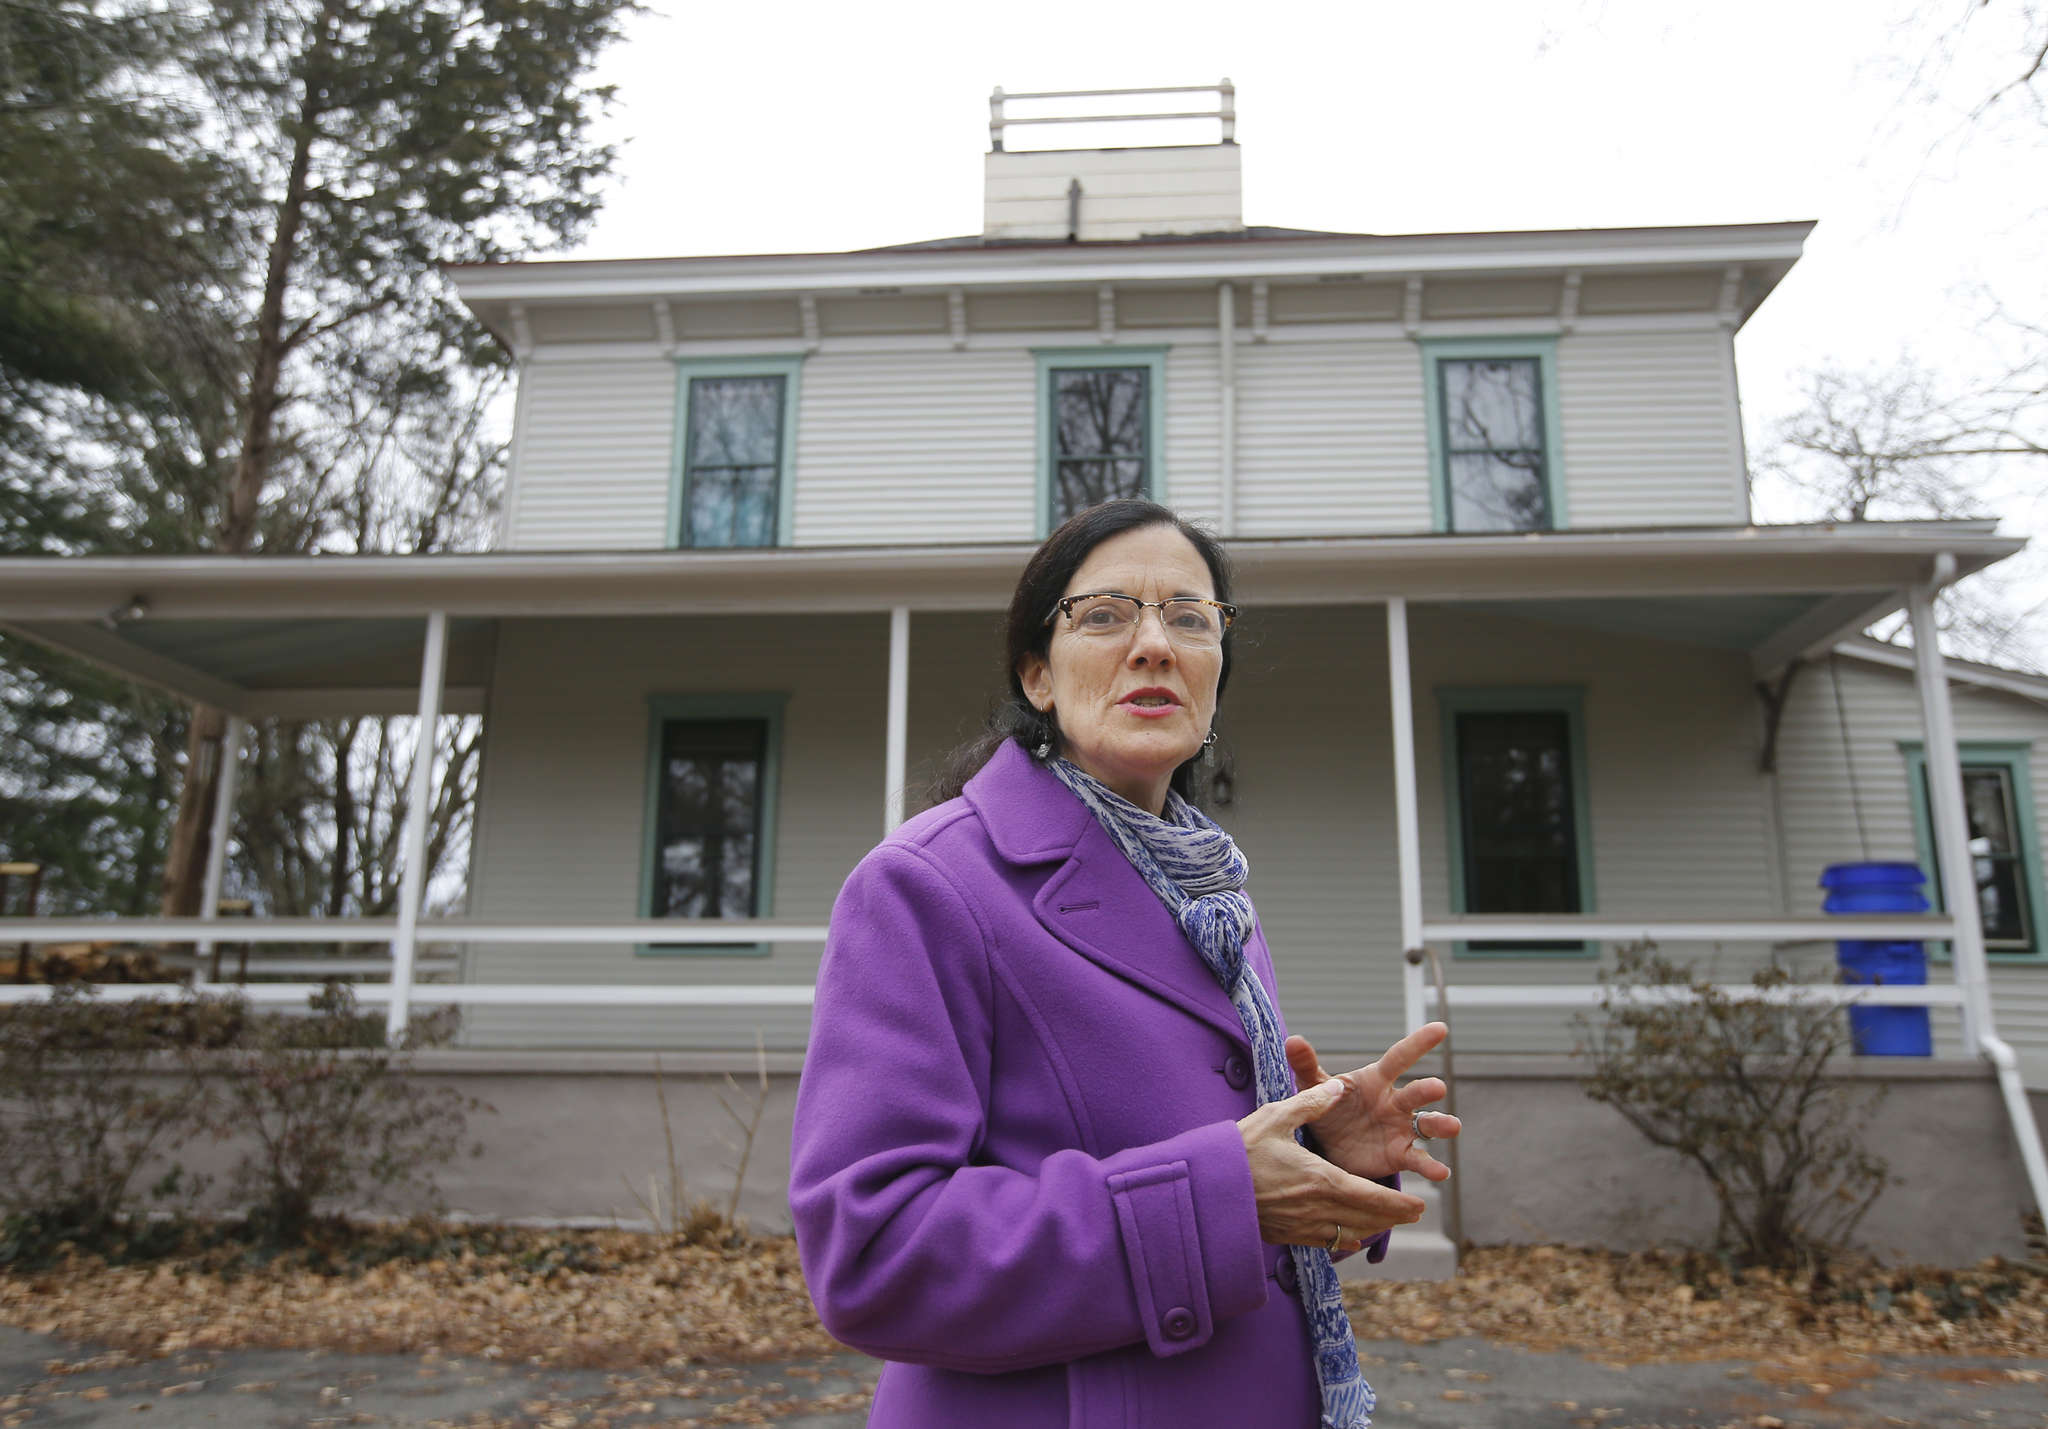 Collingswood Borough Commissioner Joan Leonard stands in front of the house in Knight Park.